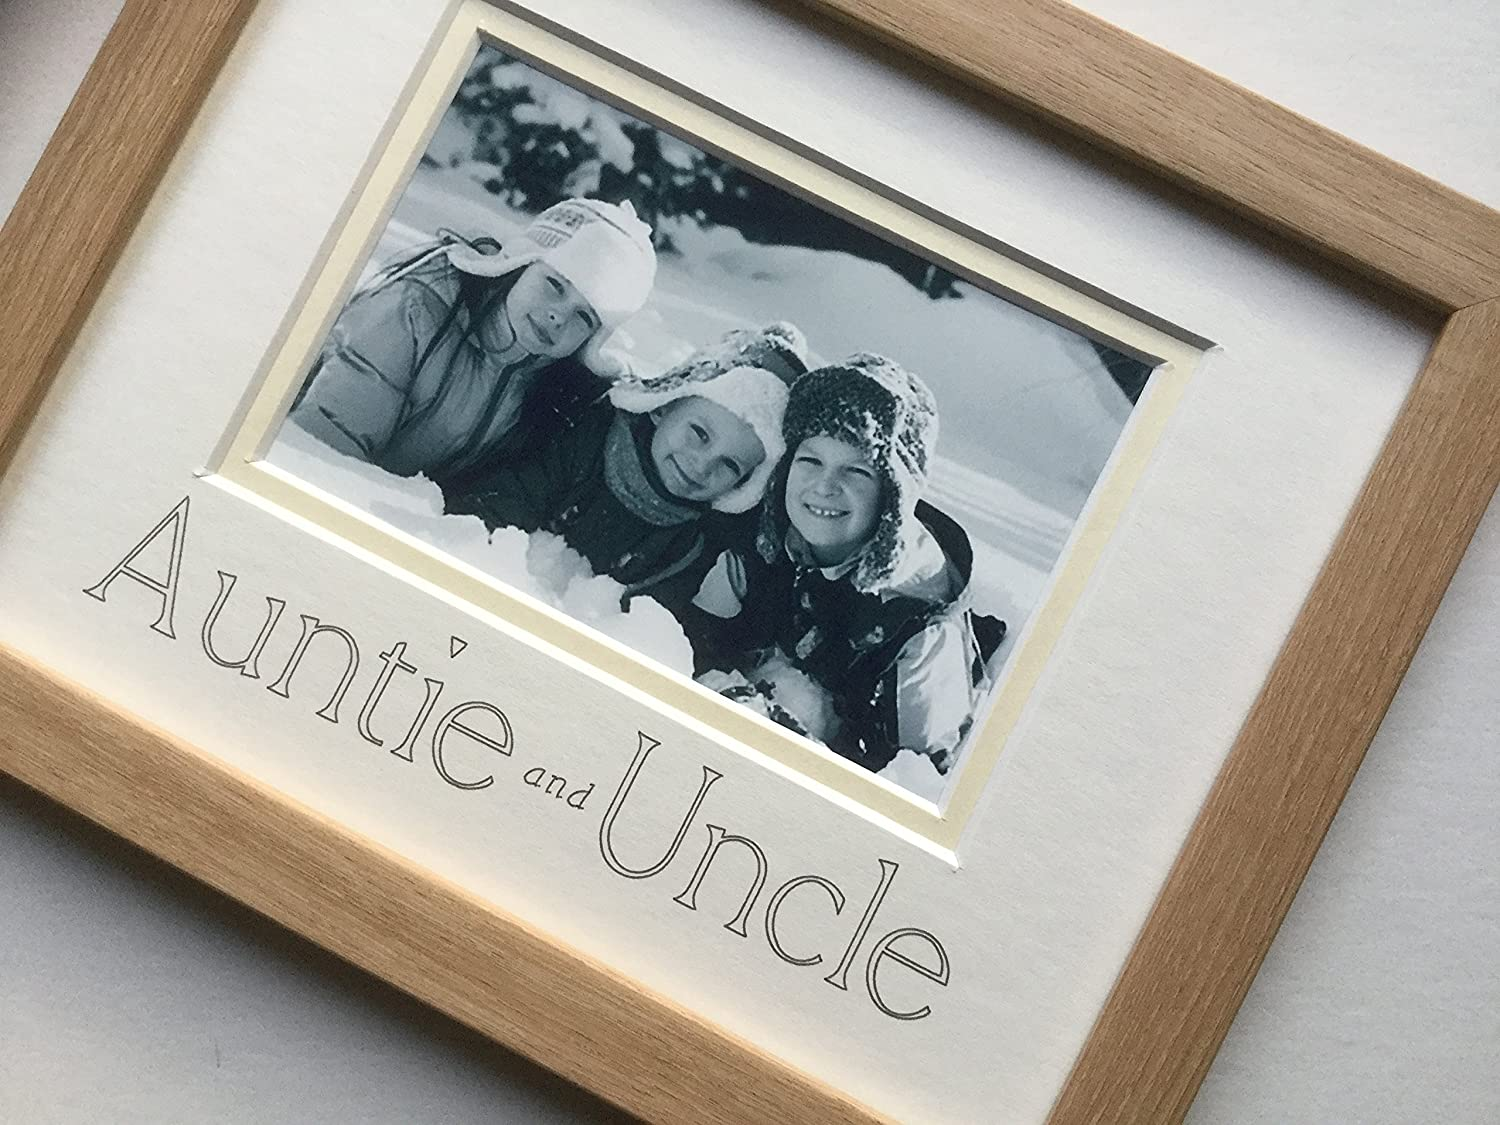 Auntie and Uncle Foto Rahmen 9 x 7 Buche: Amazon.de: Küche & Haushalt